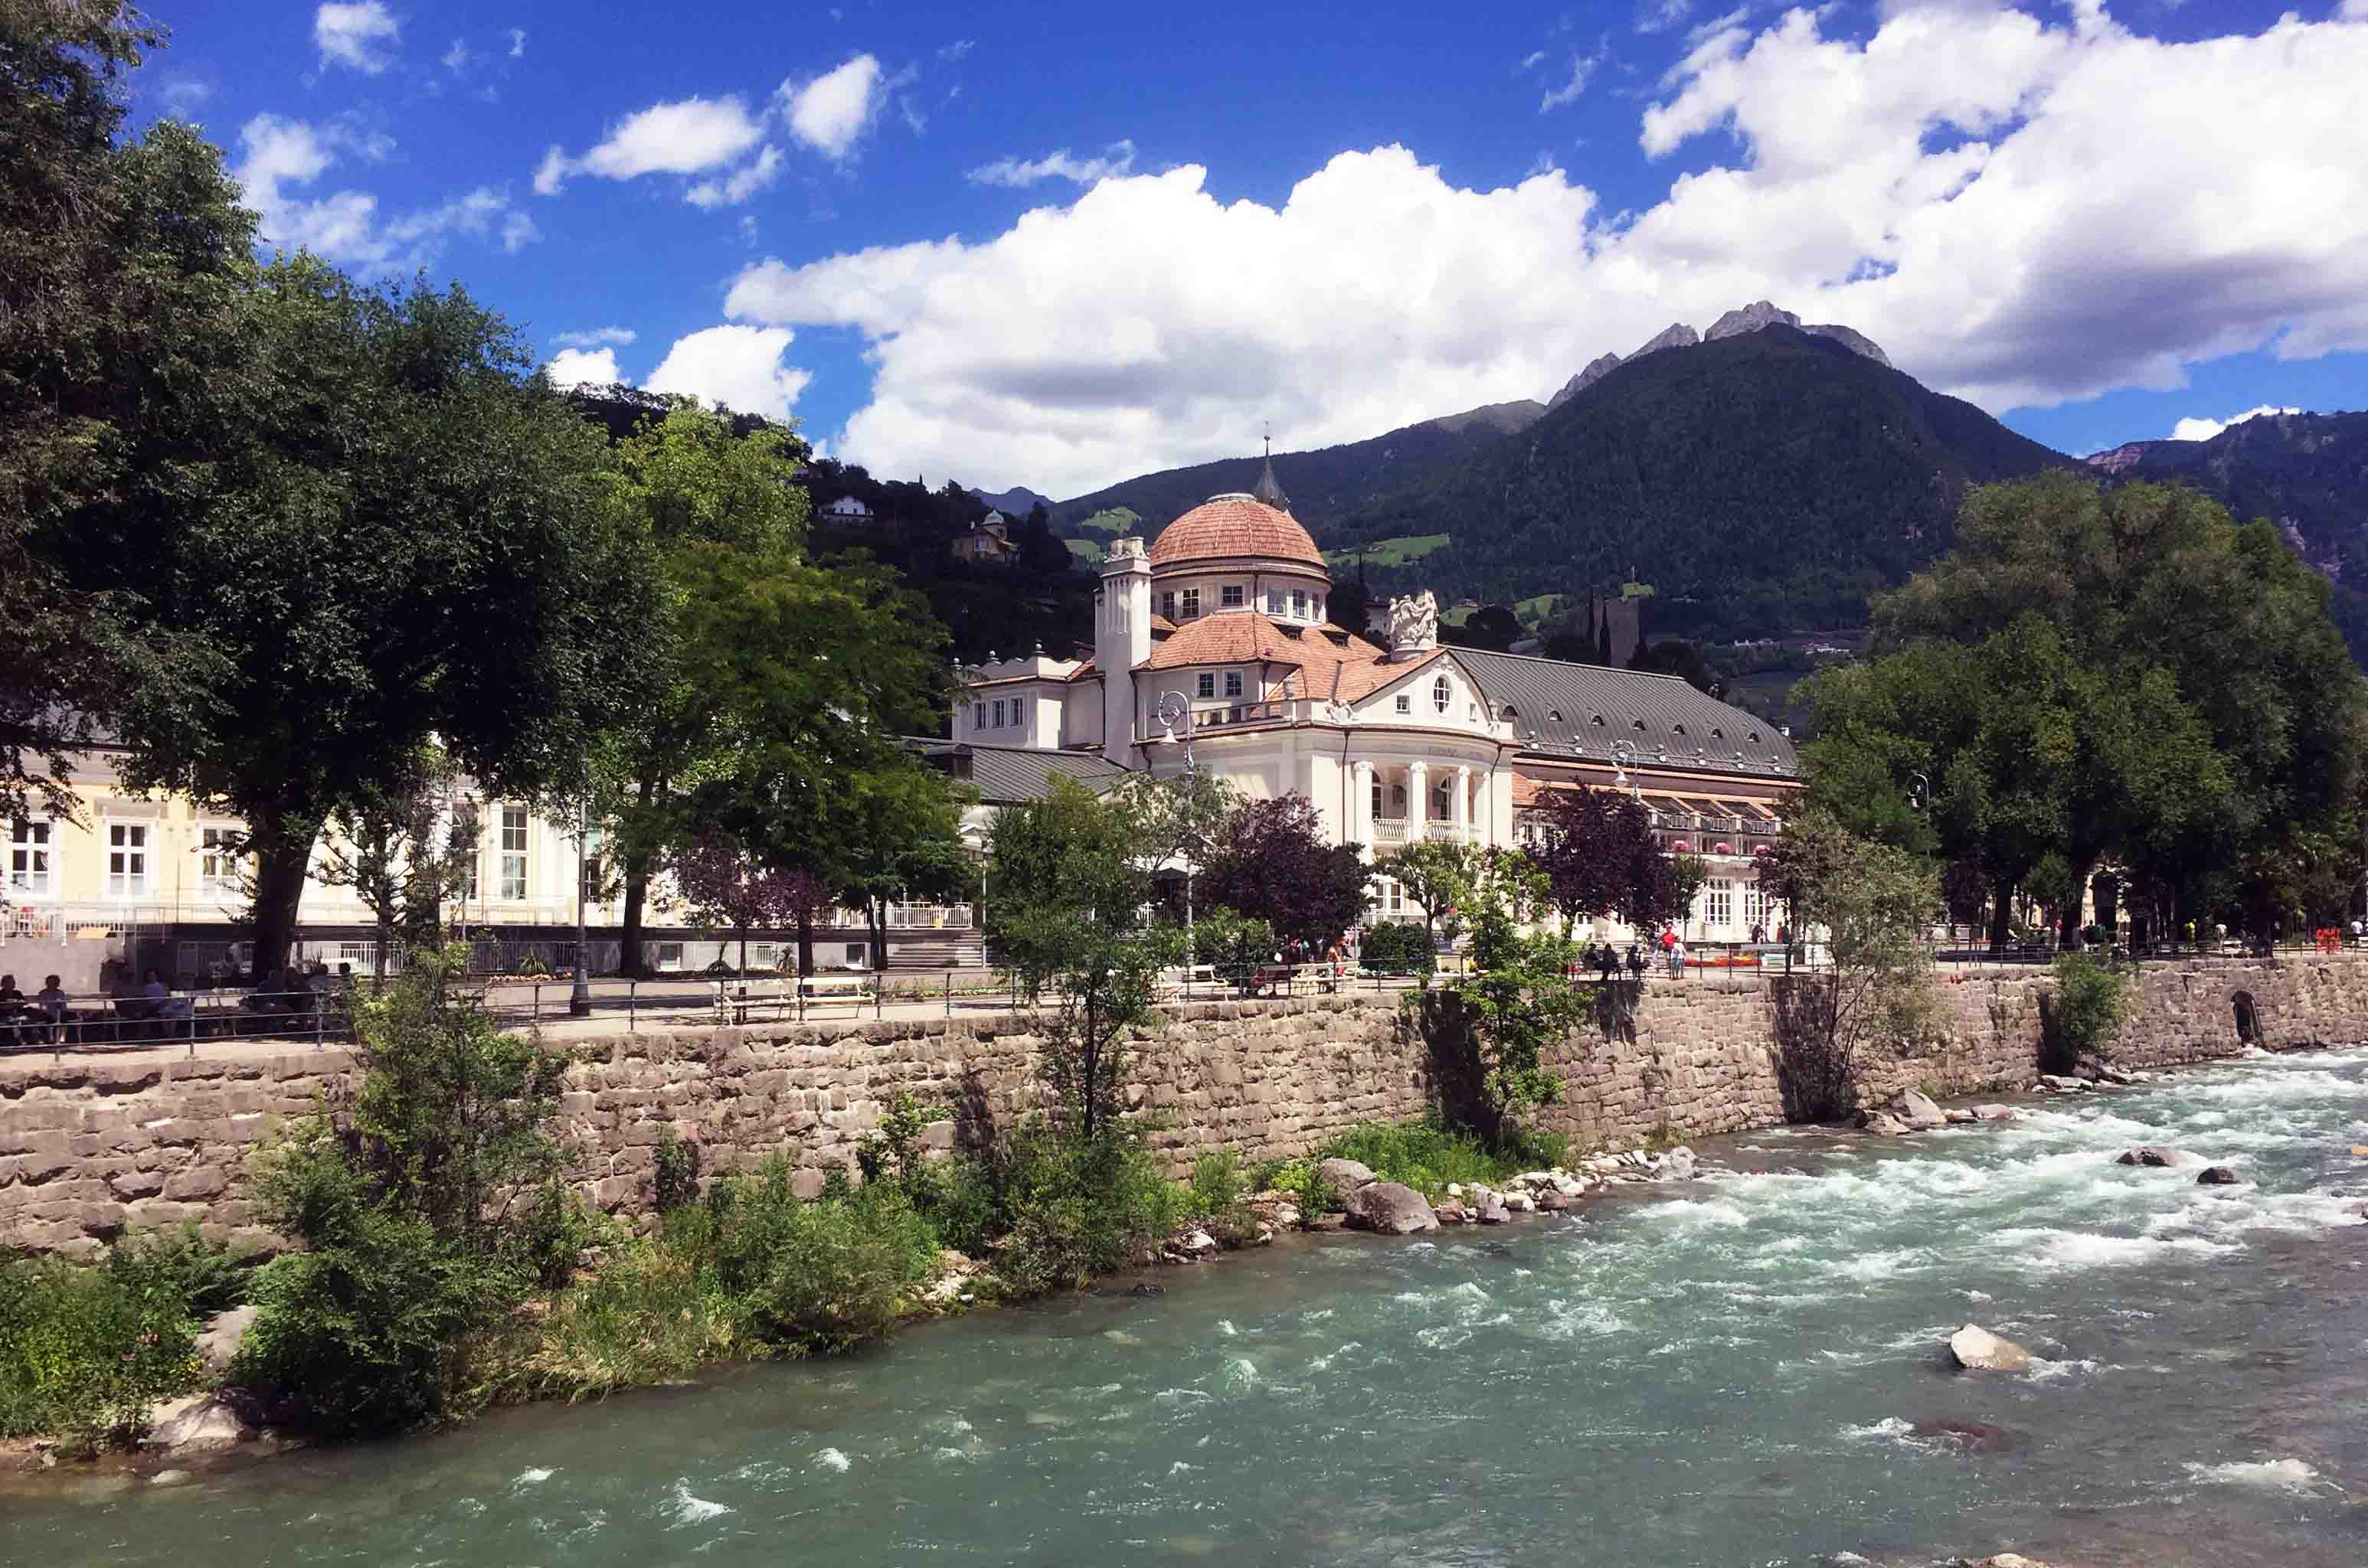 This is a bridge over the river passei in Meran, South Tyrol which is in Italy and you can see italian architecture as well.